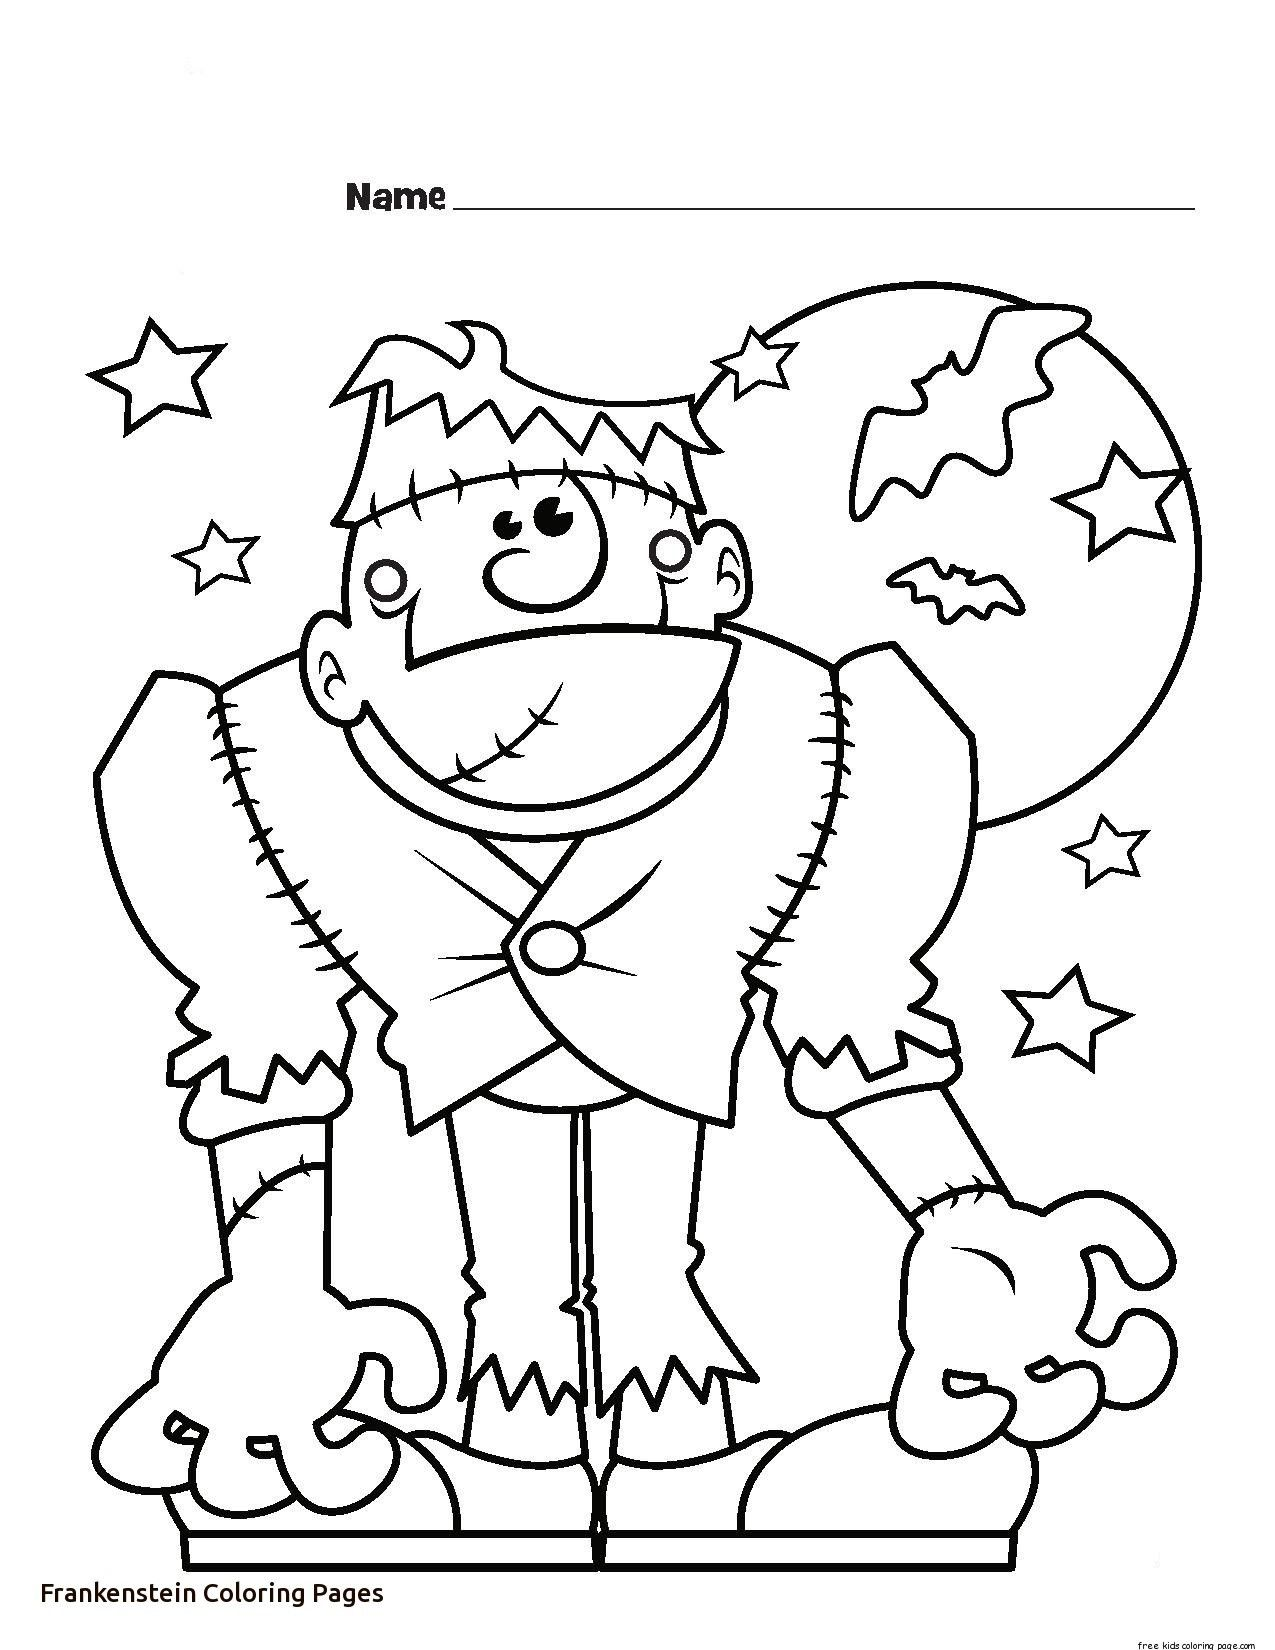 Halloween Frankenstein Coloring Pages 29